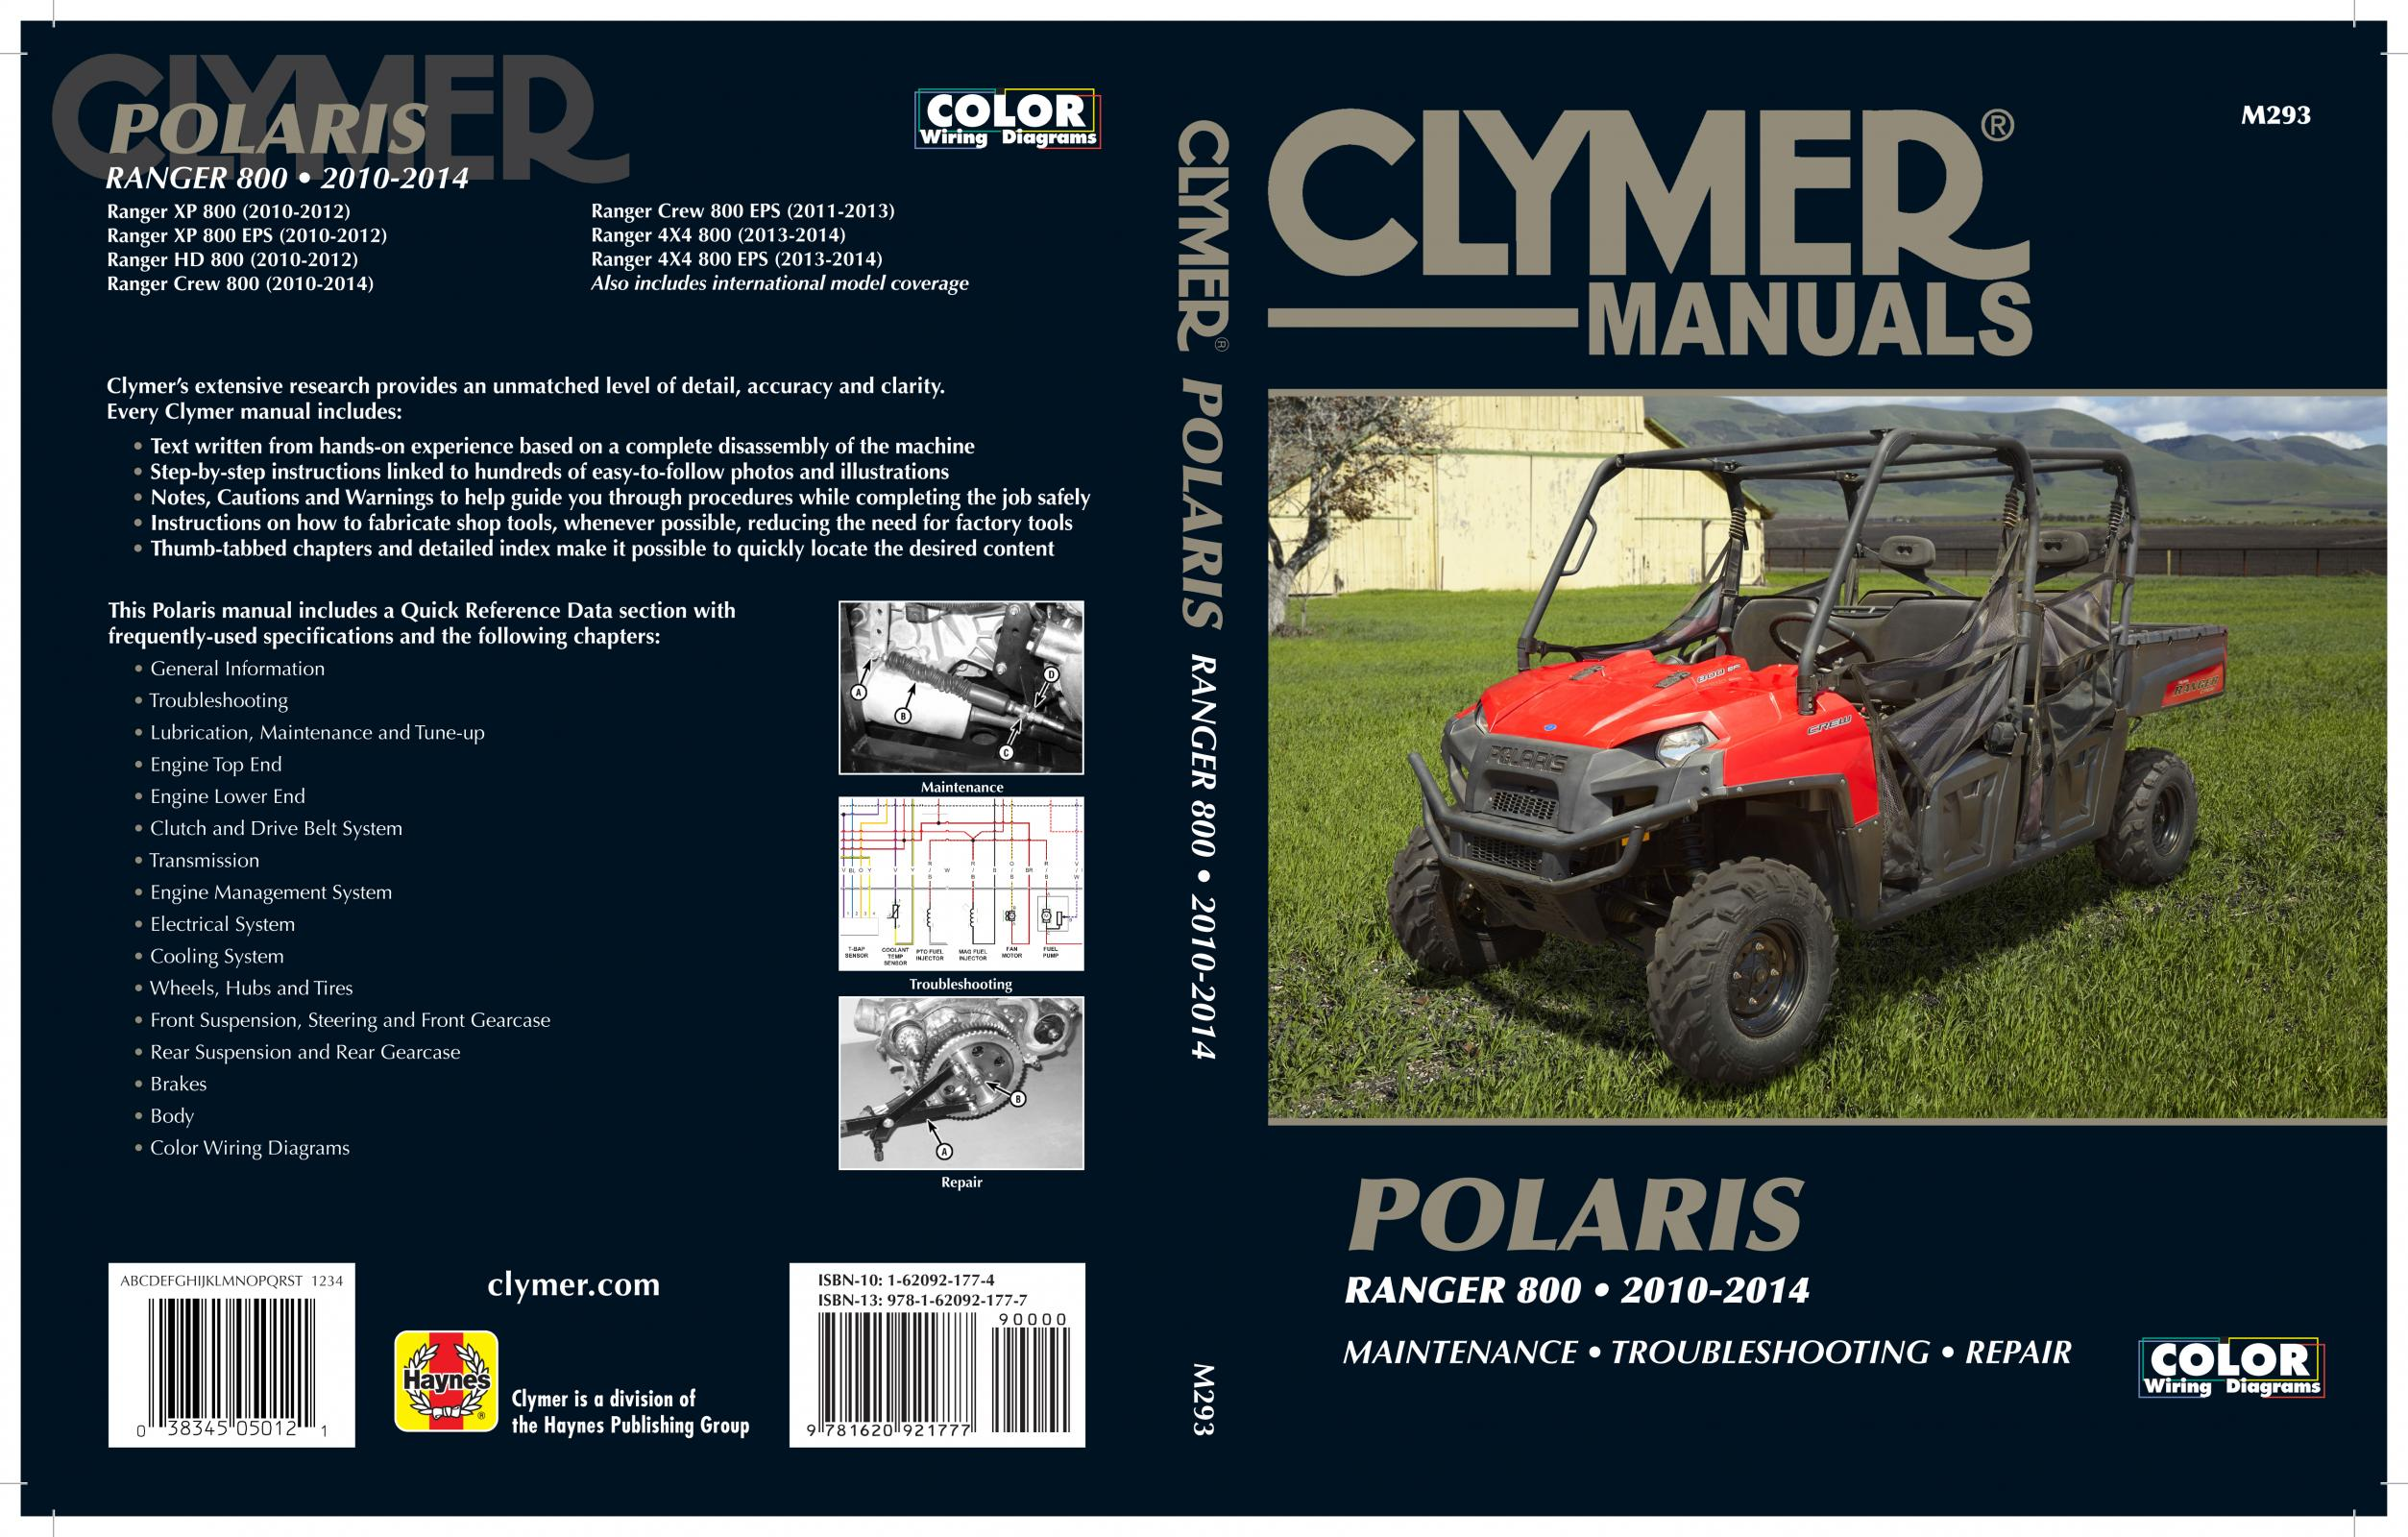 Rzr 12 Wiring Diagram Opinions About Clymer Manuals Introduces Polaris And Ranger 800 Rh Atvillustrated Com 2012 Diagrams